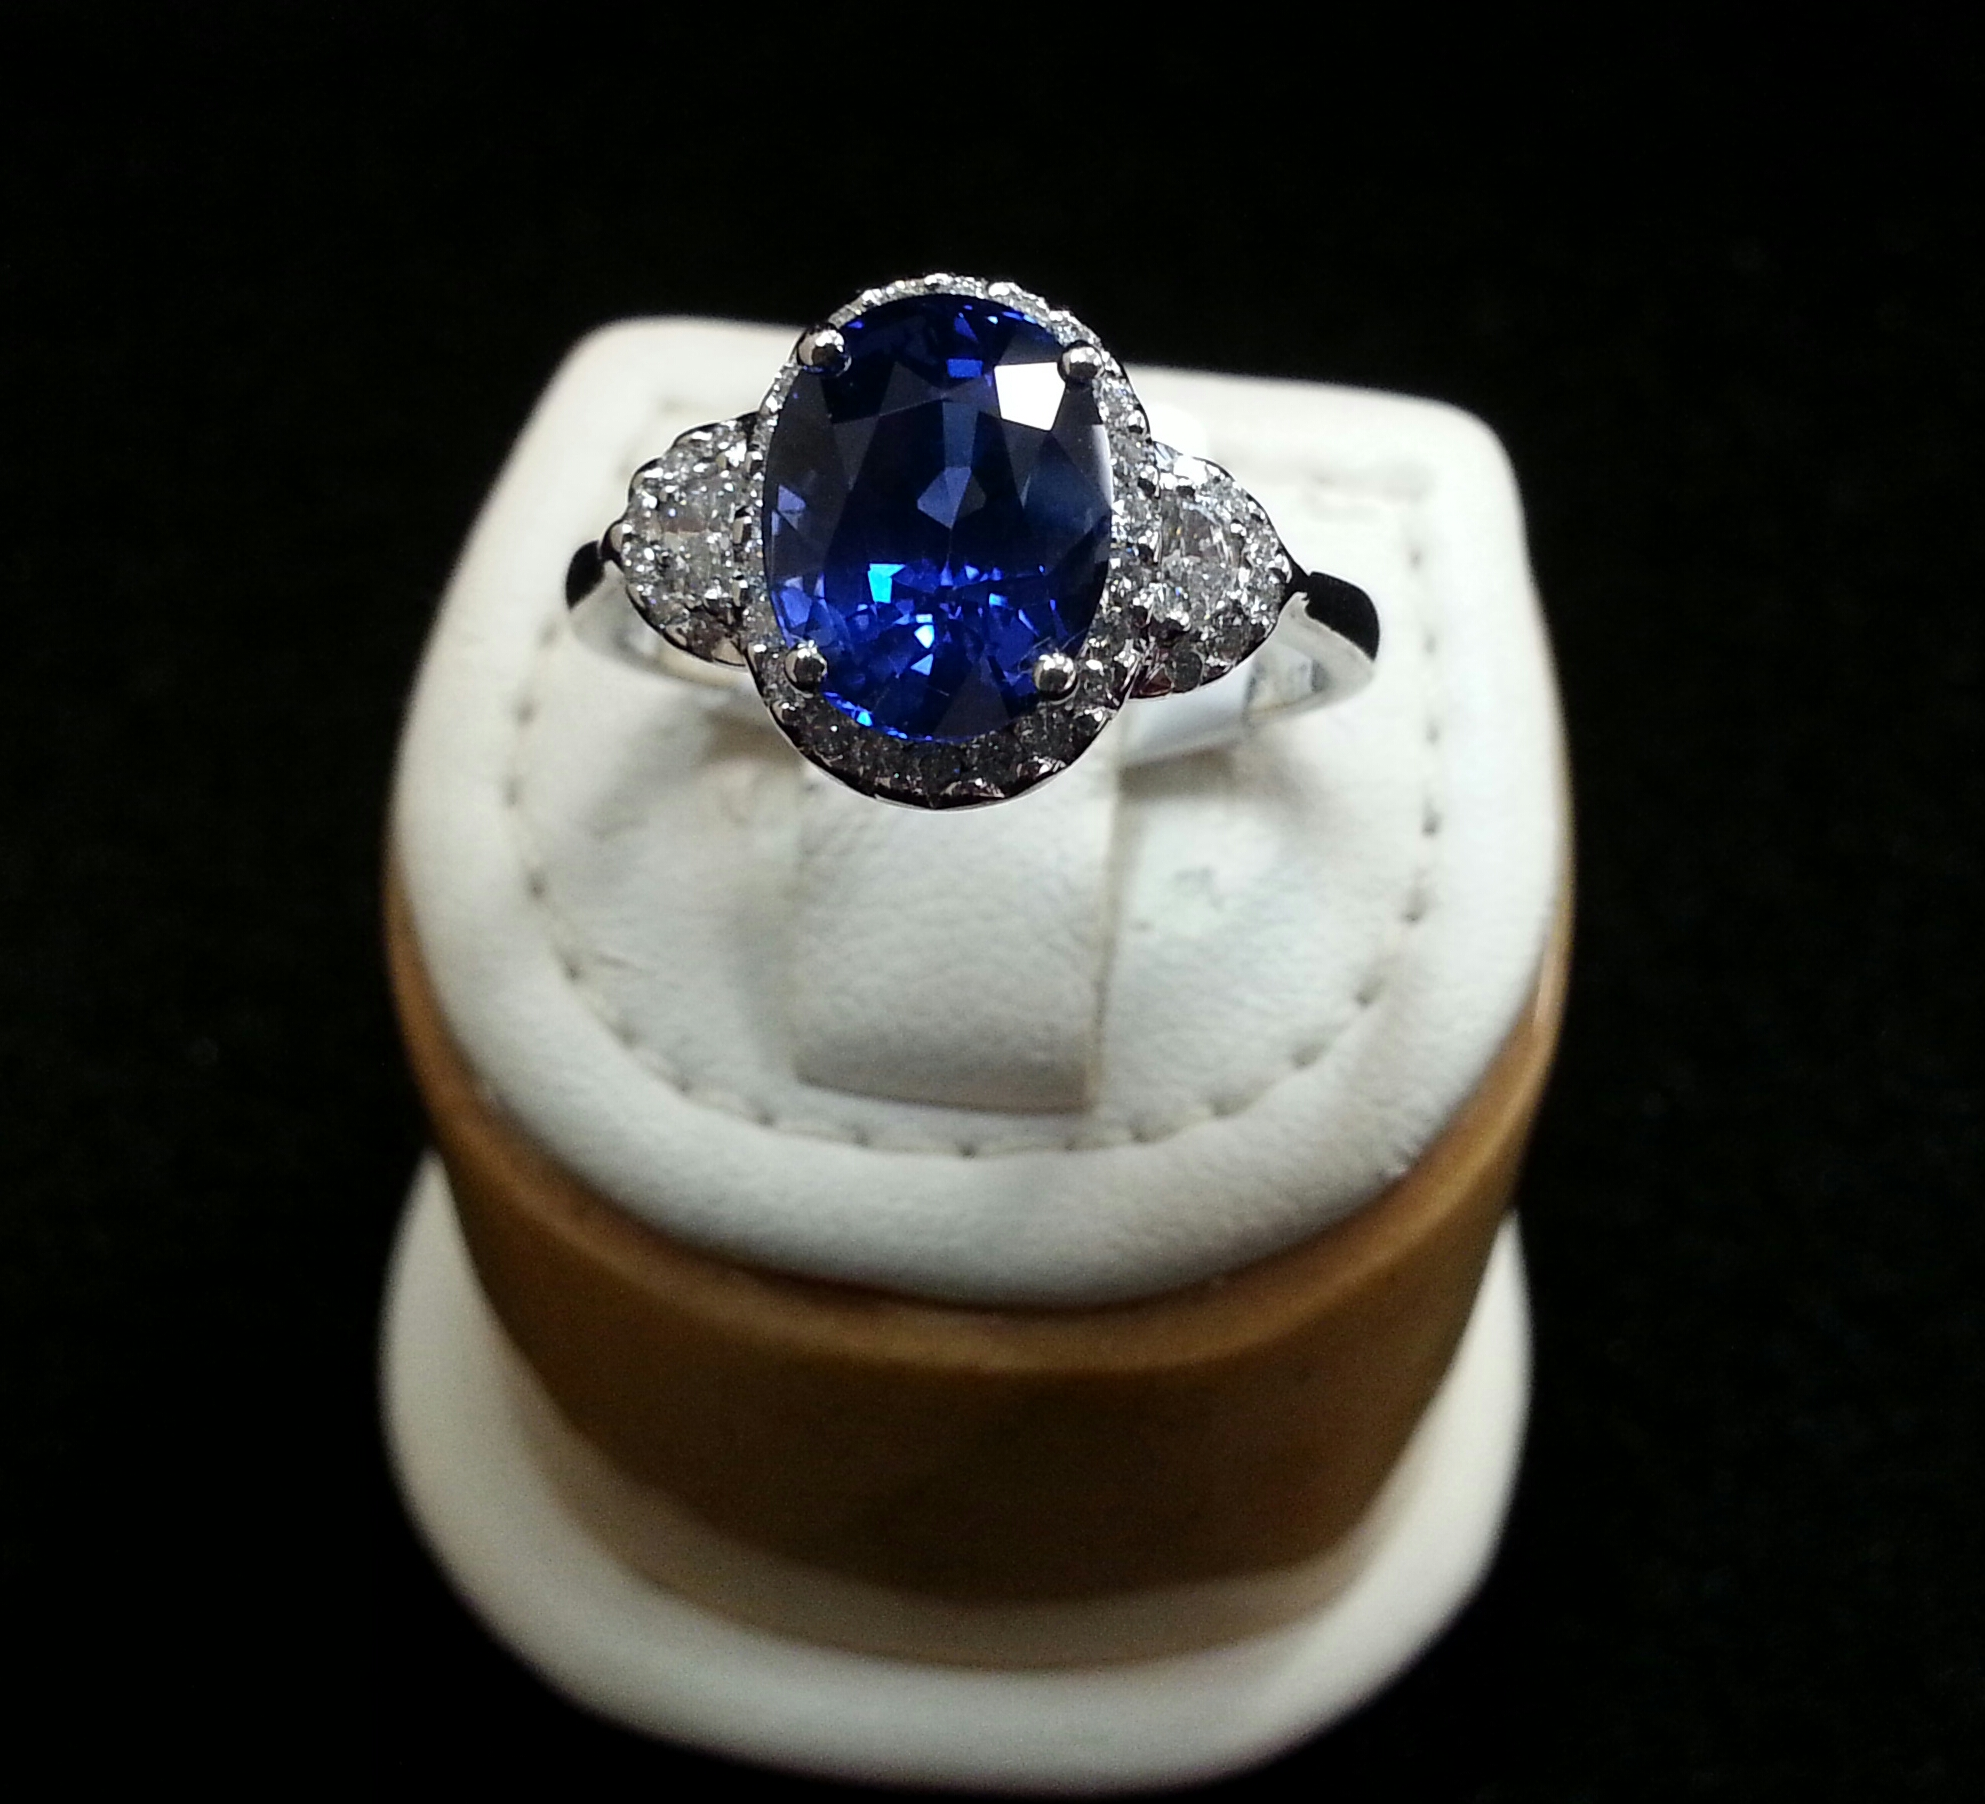 Oval Blue Sapphire and Half Moon Diamond Ring with Micro Pave Set in 18k White Gold. Sapphire is 3.67ct and Diamonds are 0.39ctw